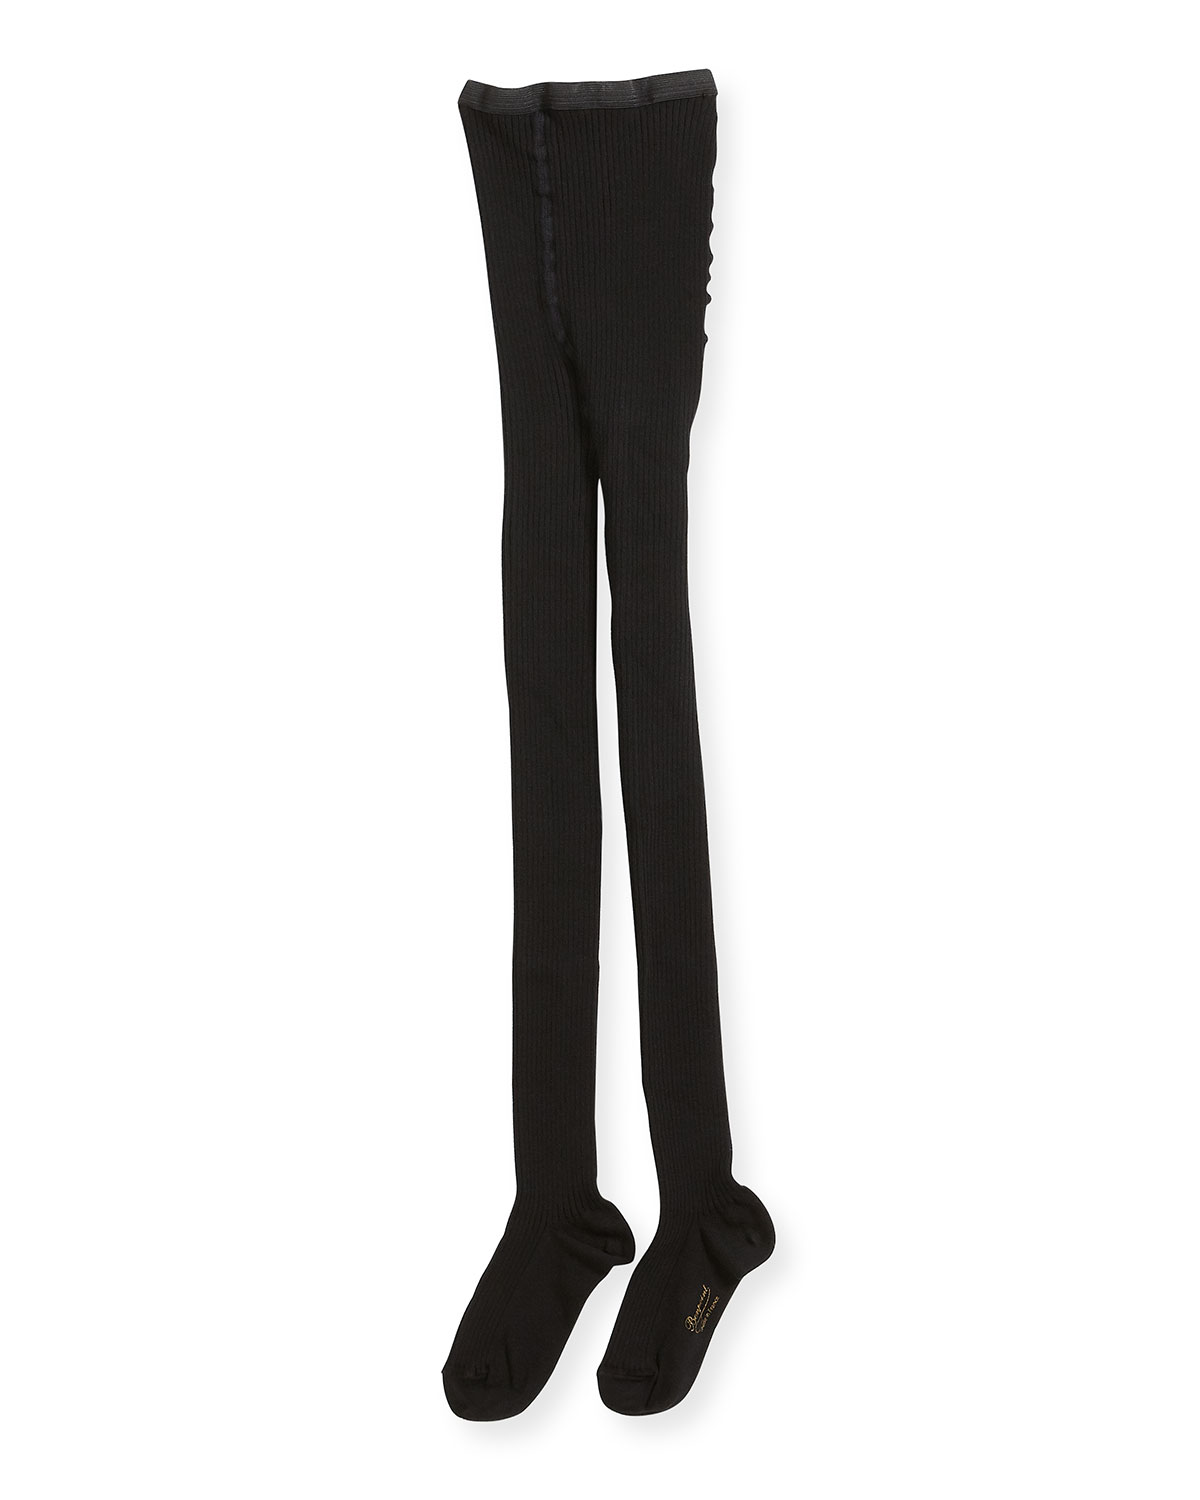 Bonpoint GIRLS' RIBBED STRETCH TIGHTS